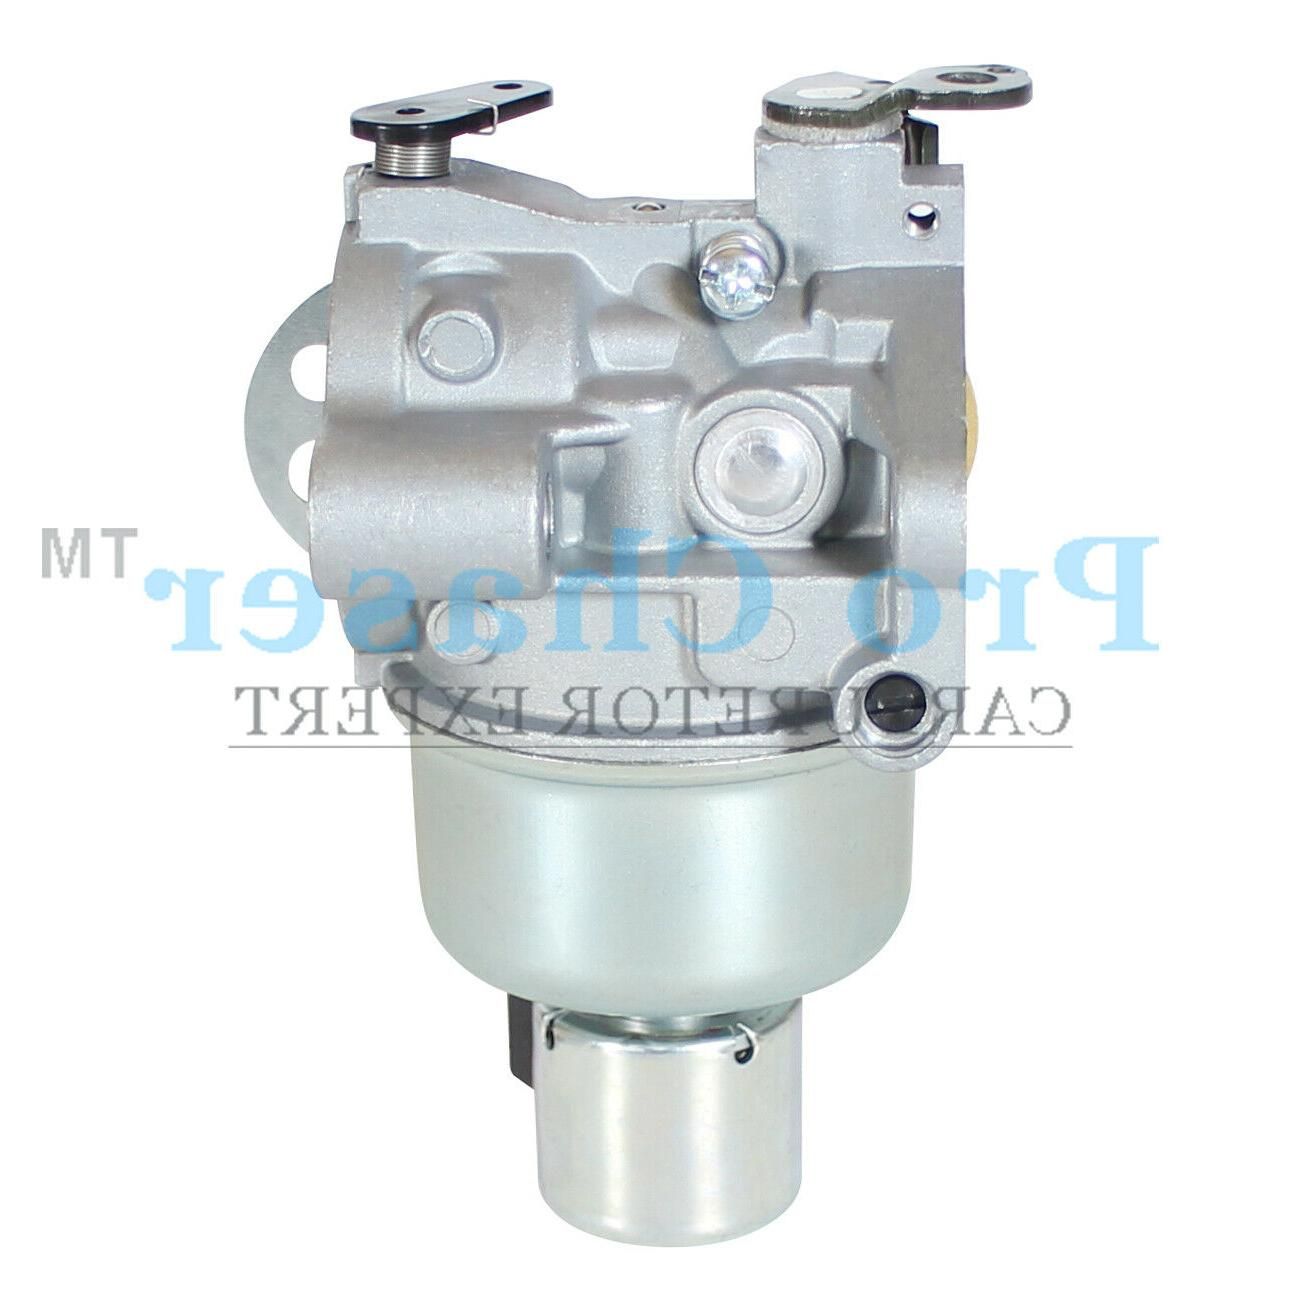 Carburetor for Horse lawn tractor